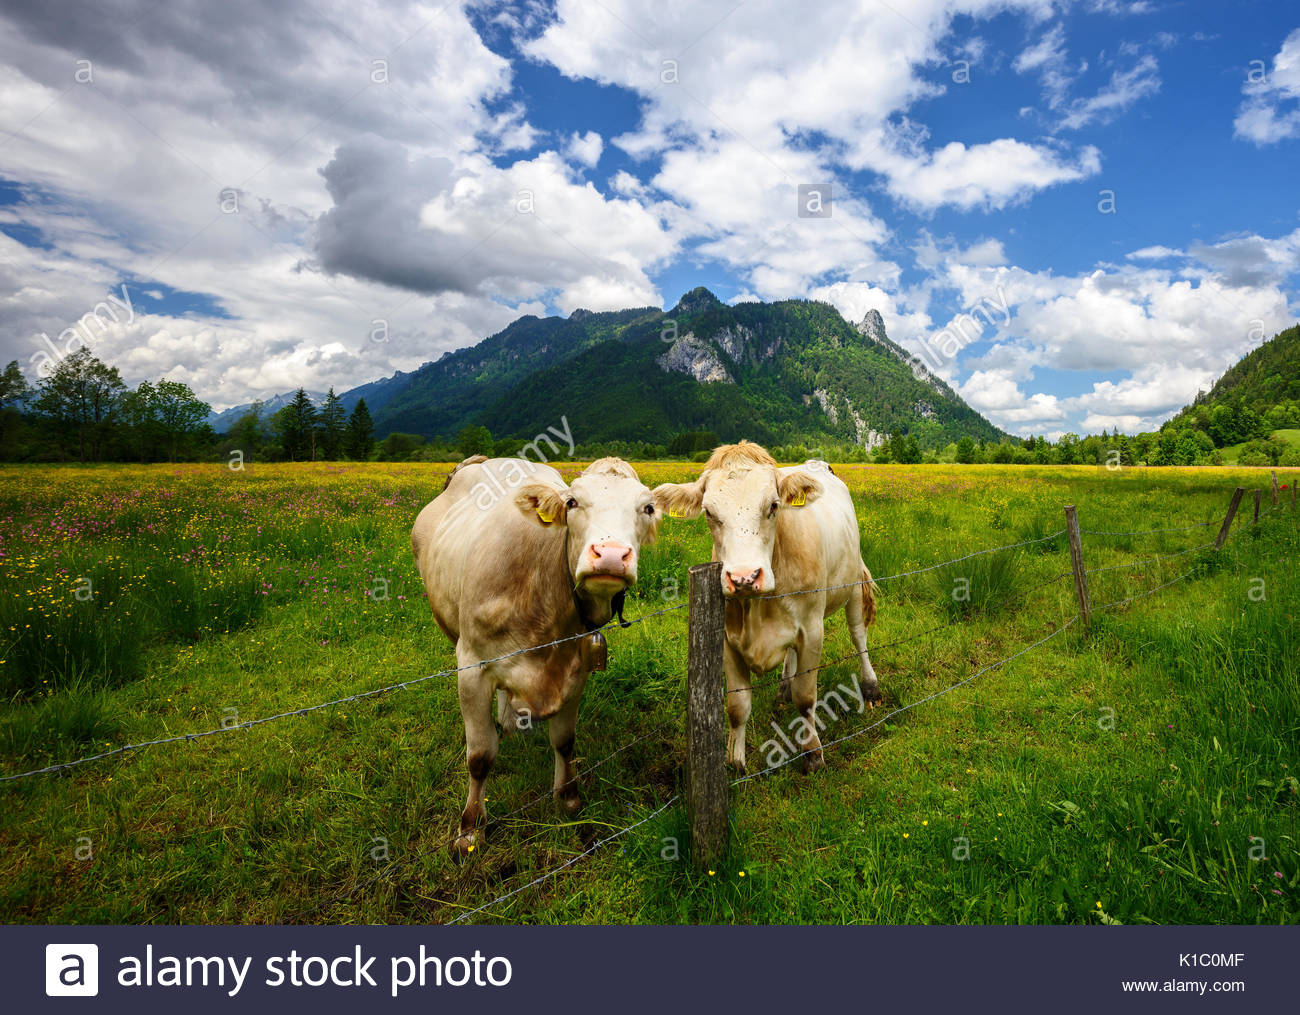 Idyllic Beautiful landscape in the Alps with cows grazing in fresh green meadows withblooming flowers, typical countryside - Stock Image